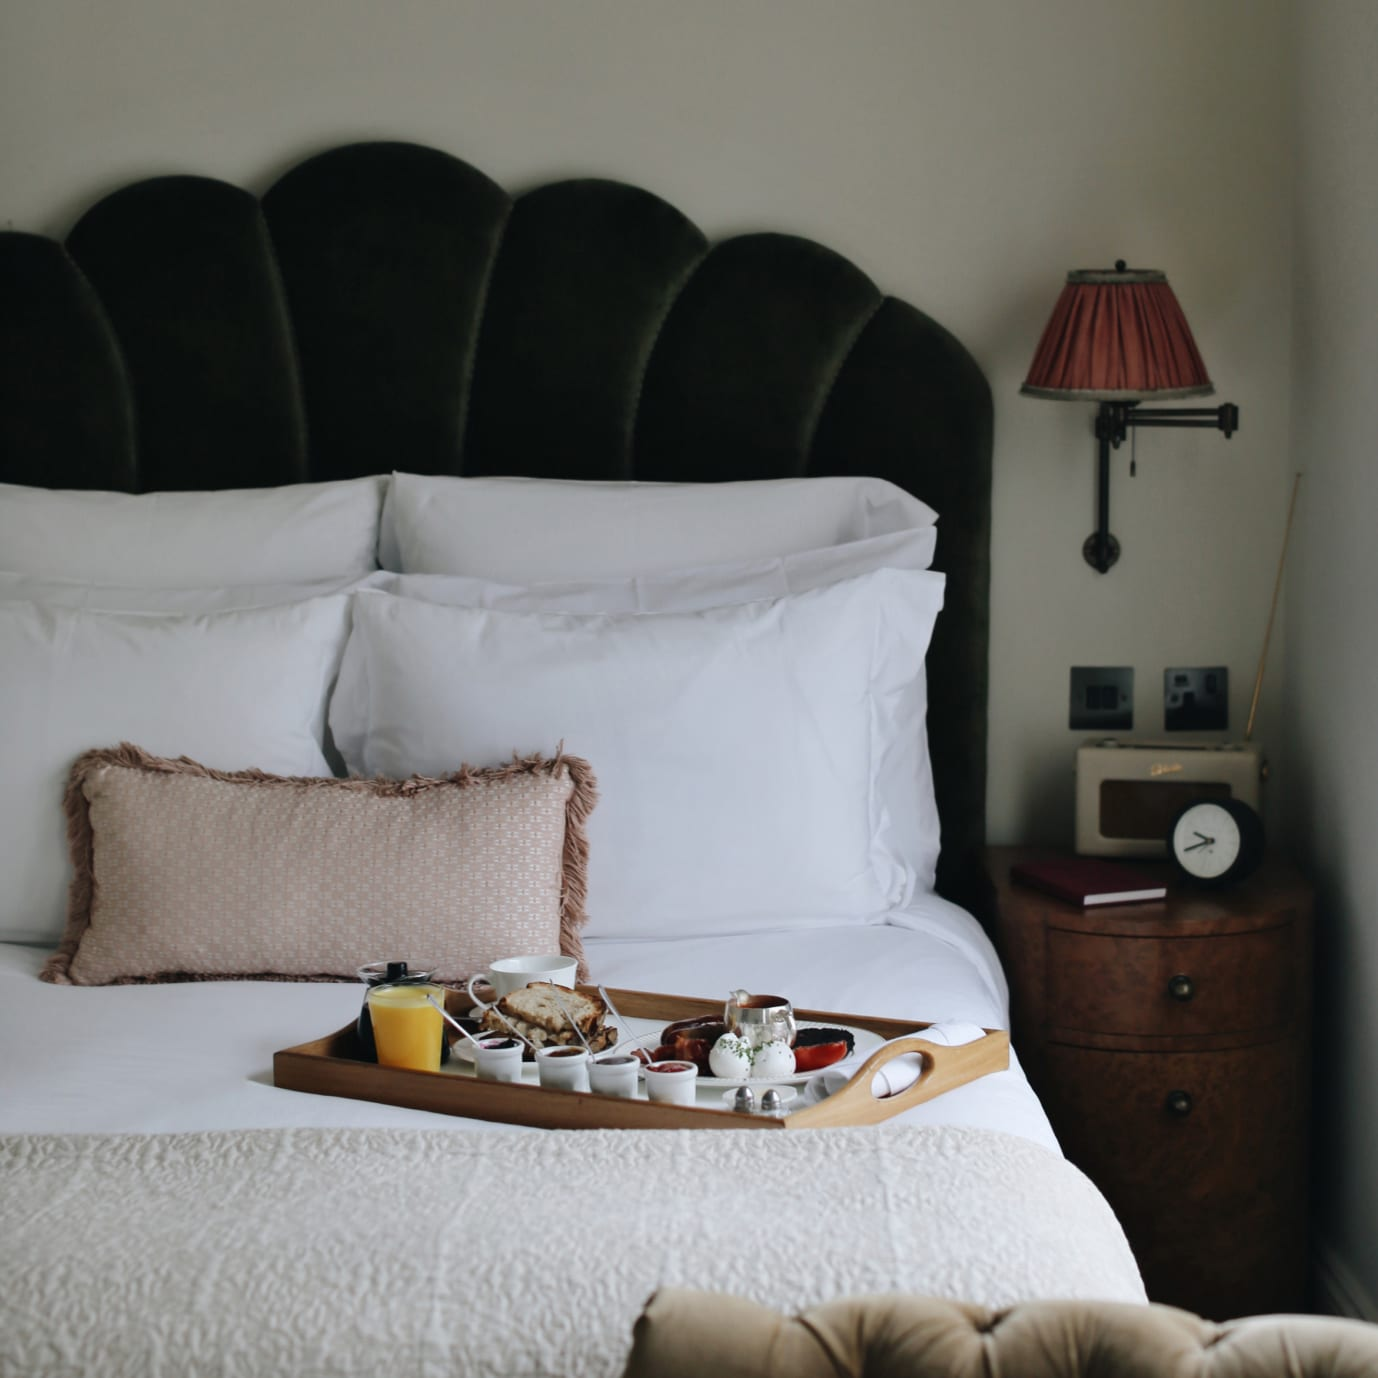 A bed with room service on it on a tray.